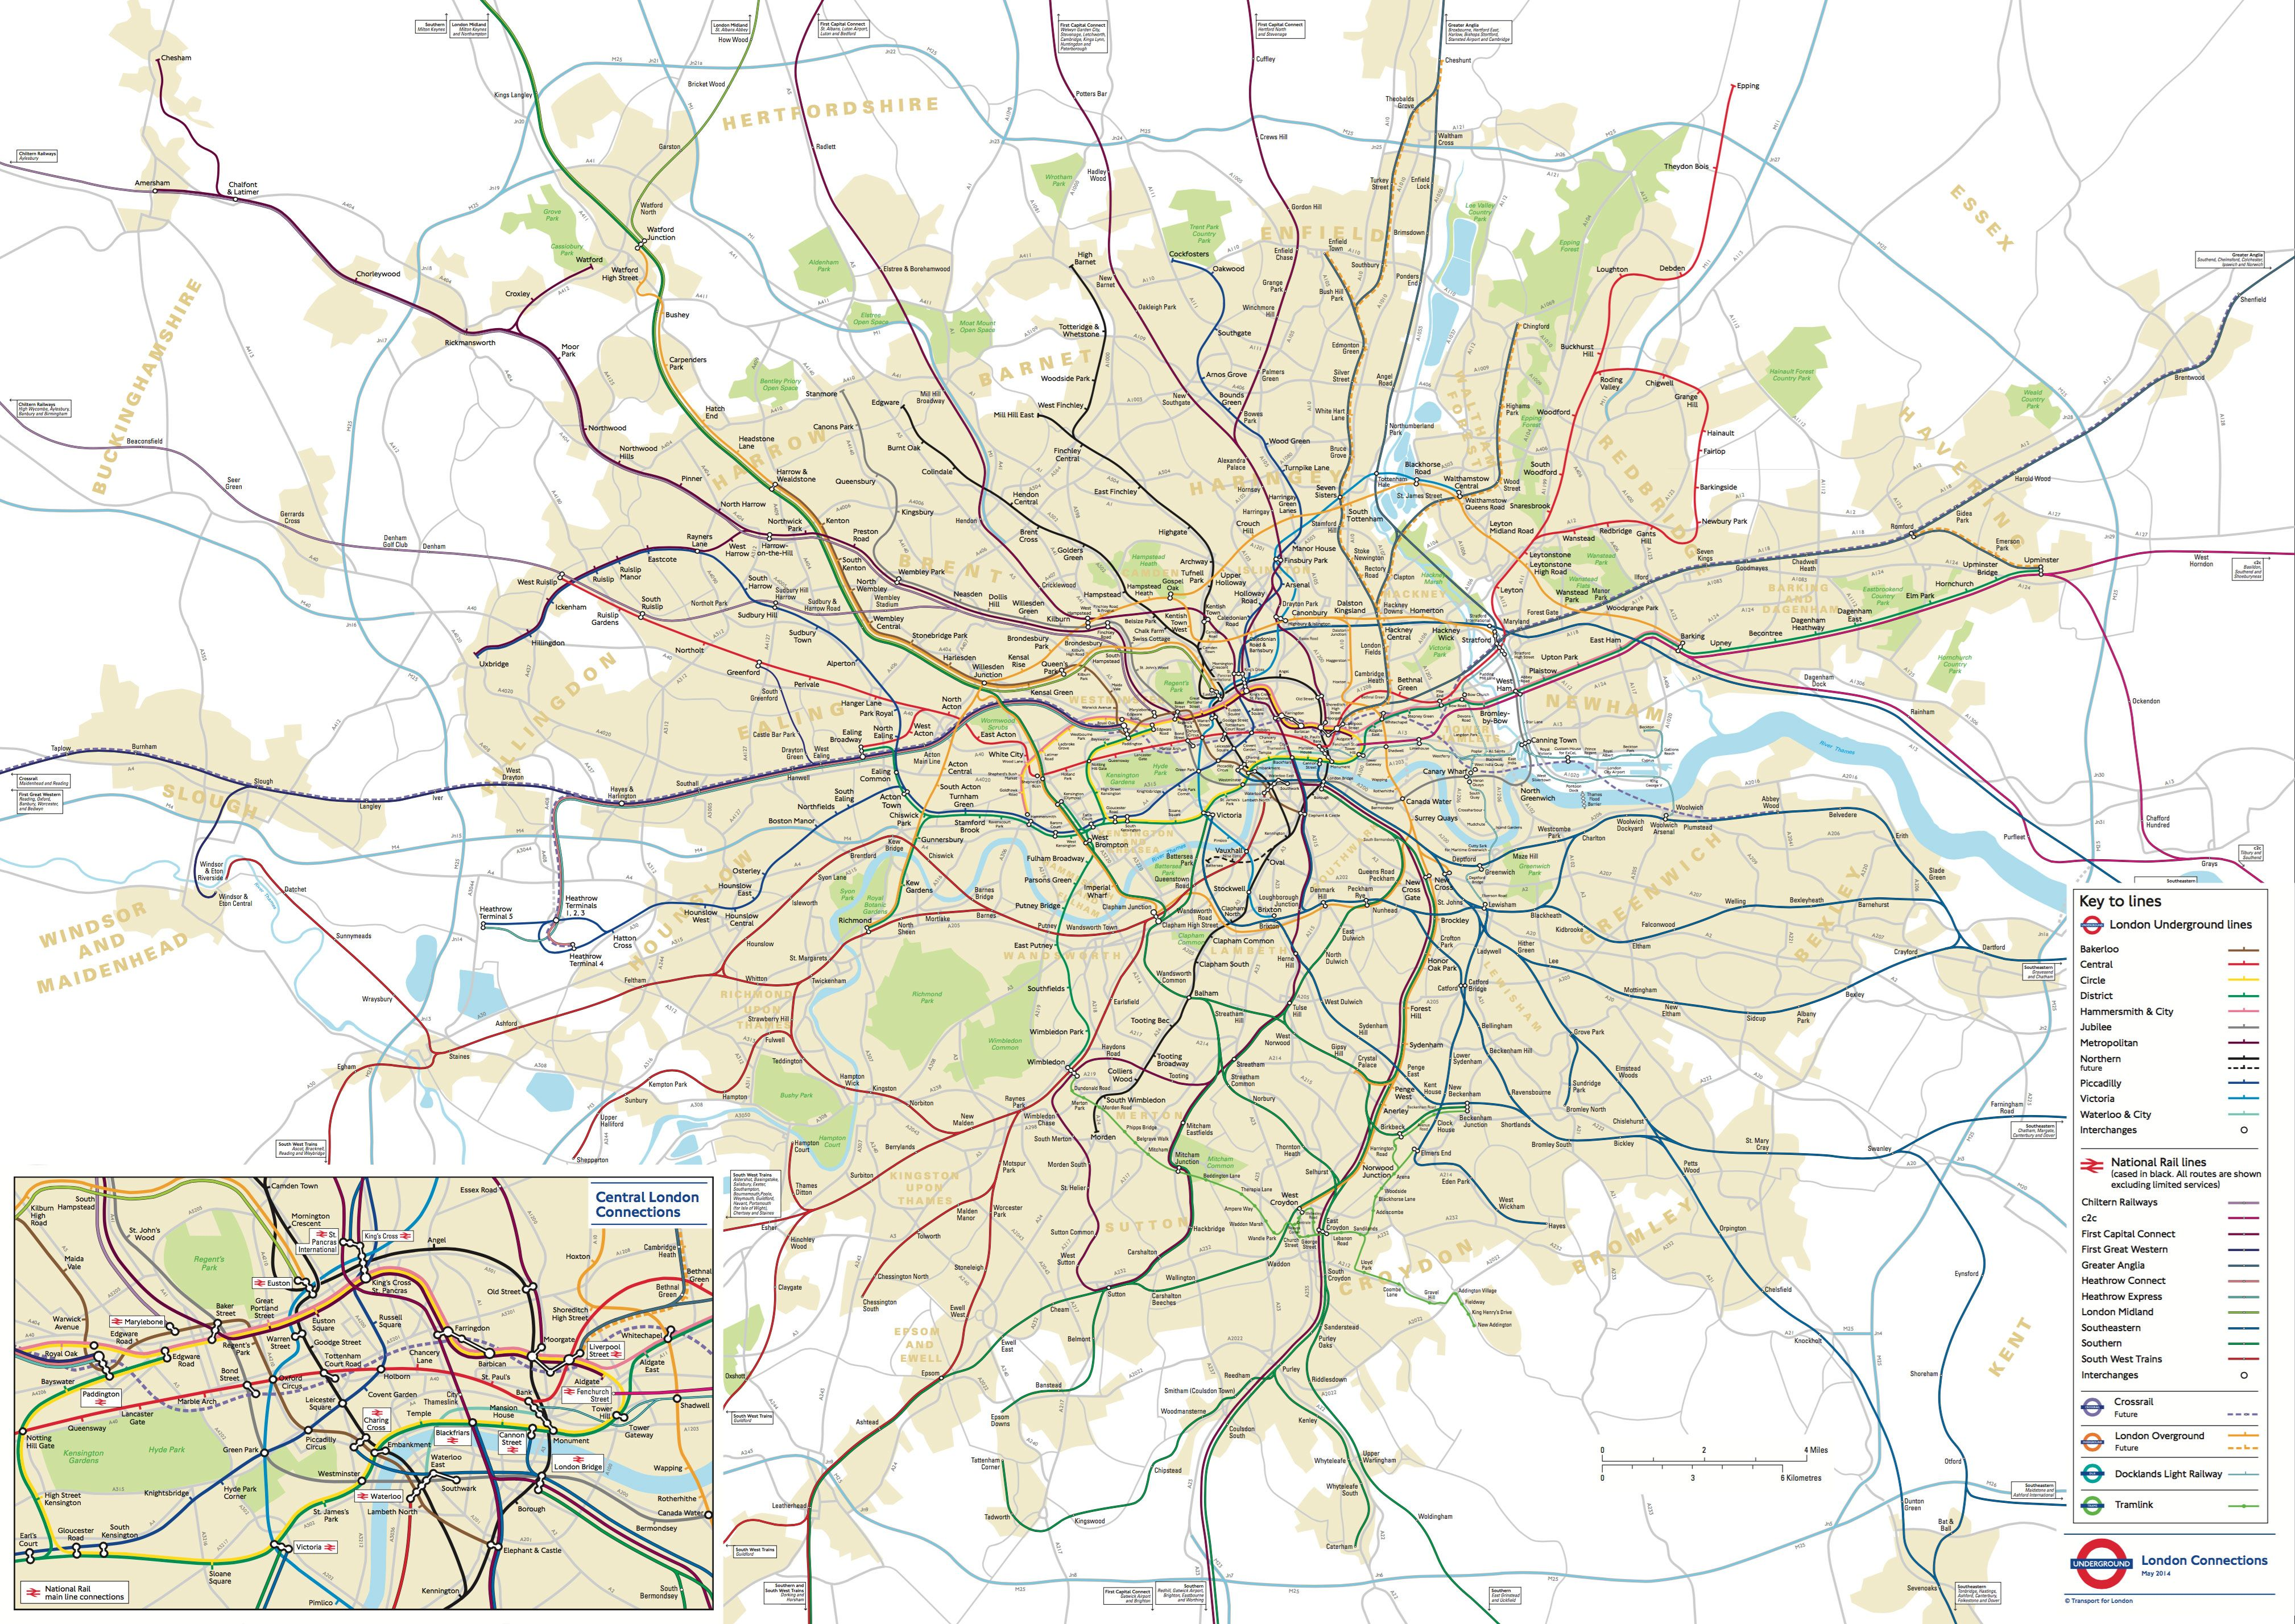 Tfl has secretly made a geographically accurate tube map tfl has secretly made a geographically accurate london tube map gumiabroncs Choice Image